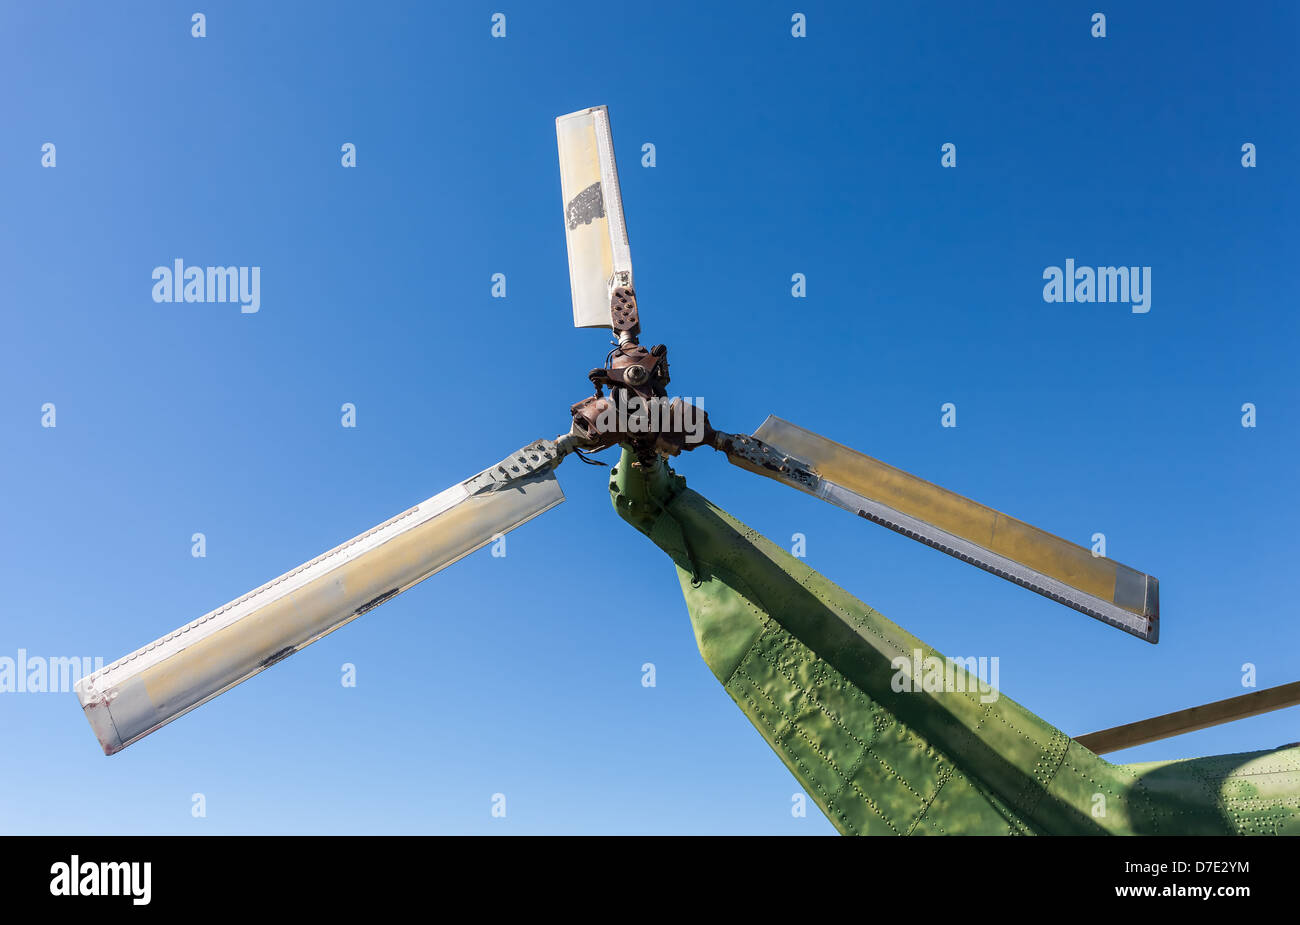 Propeller of old helicopter against blue sky - Stock Image